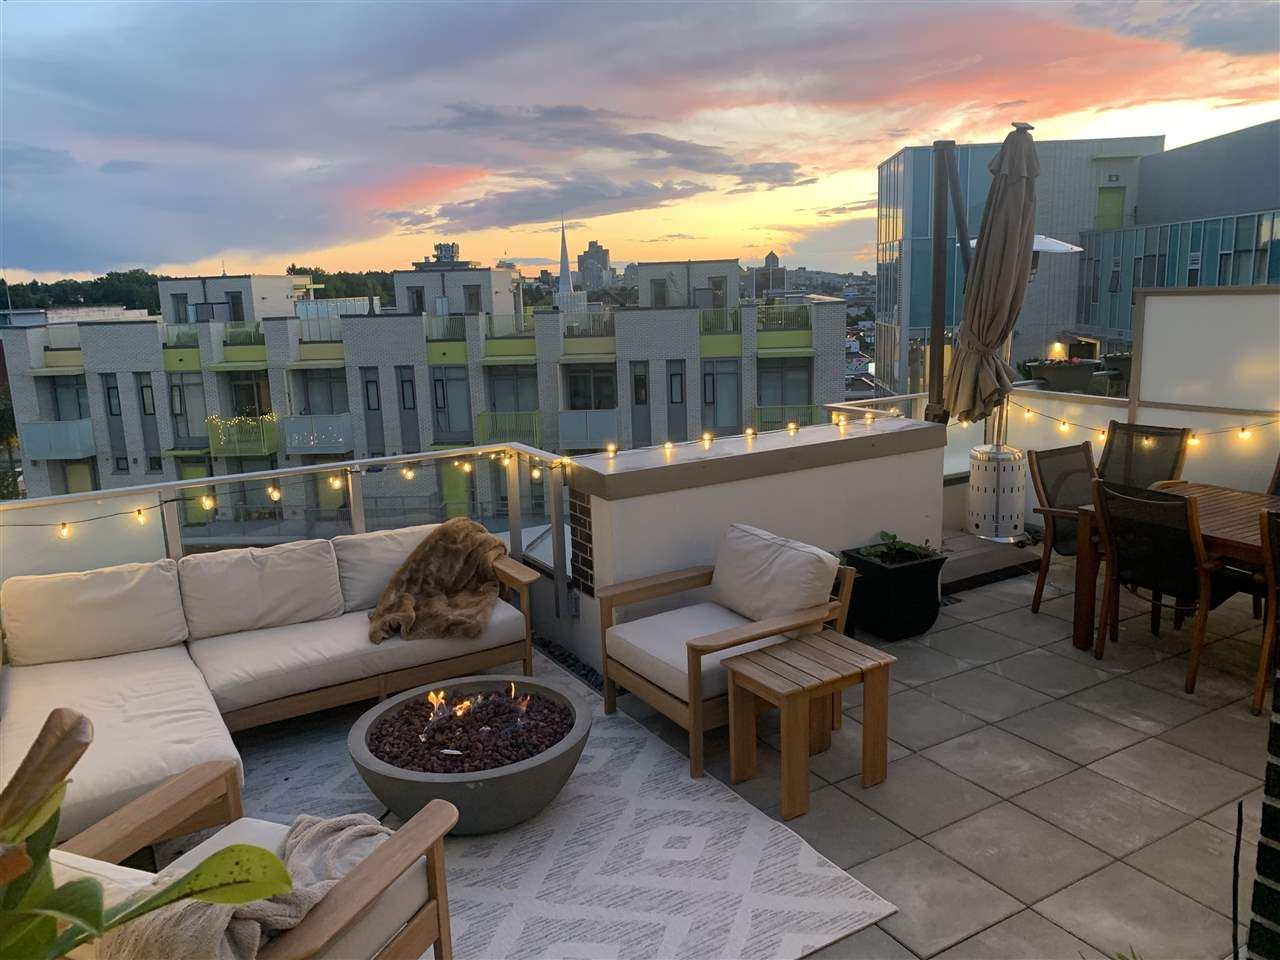 """Main Photo: 609 2508 WATSON Street in Vancouver: Mount Pleasant VE Condo for sale in """"THE INDEPENDENT"""" (Vancouver East)  : MLS®# R2462704"""